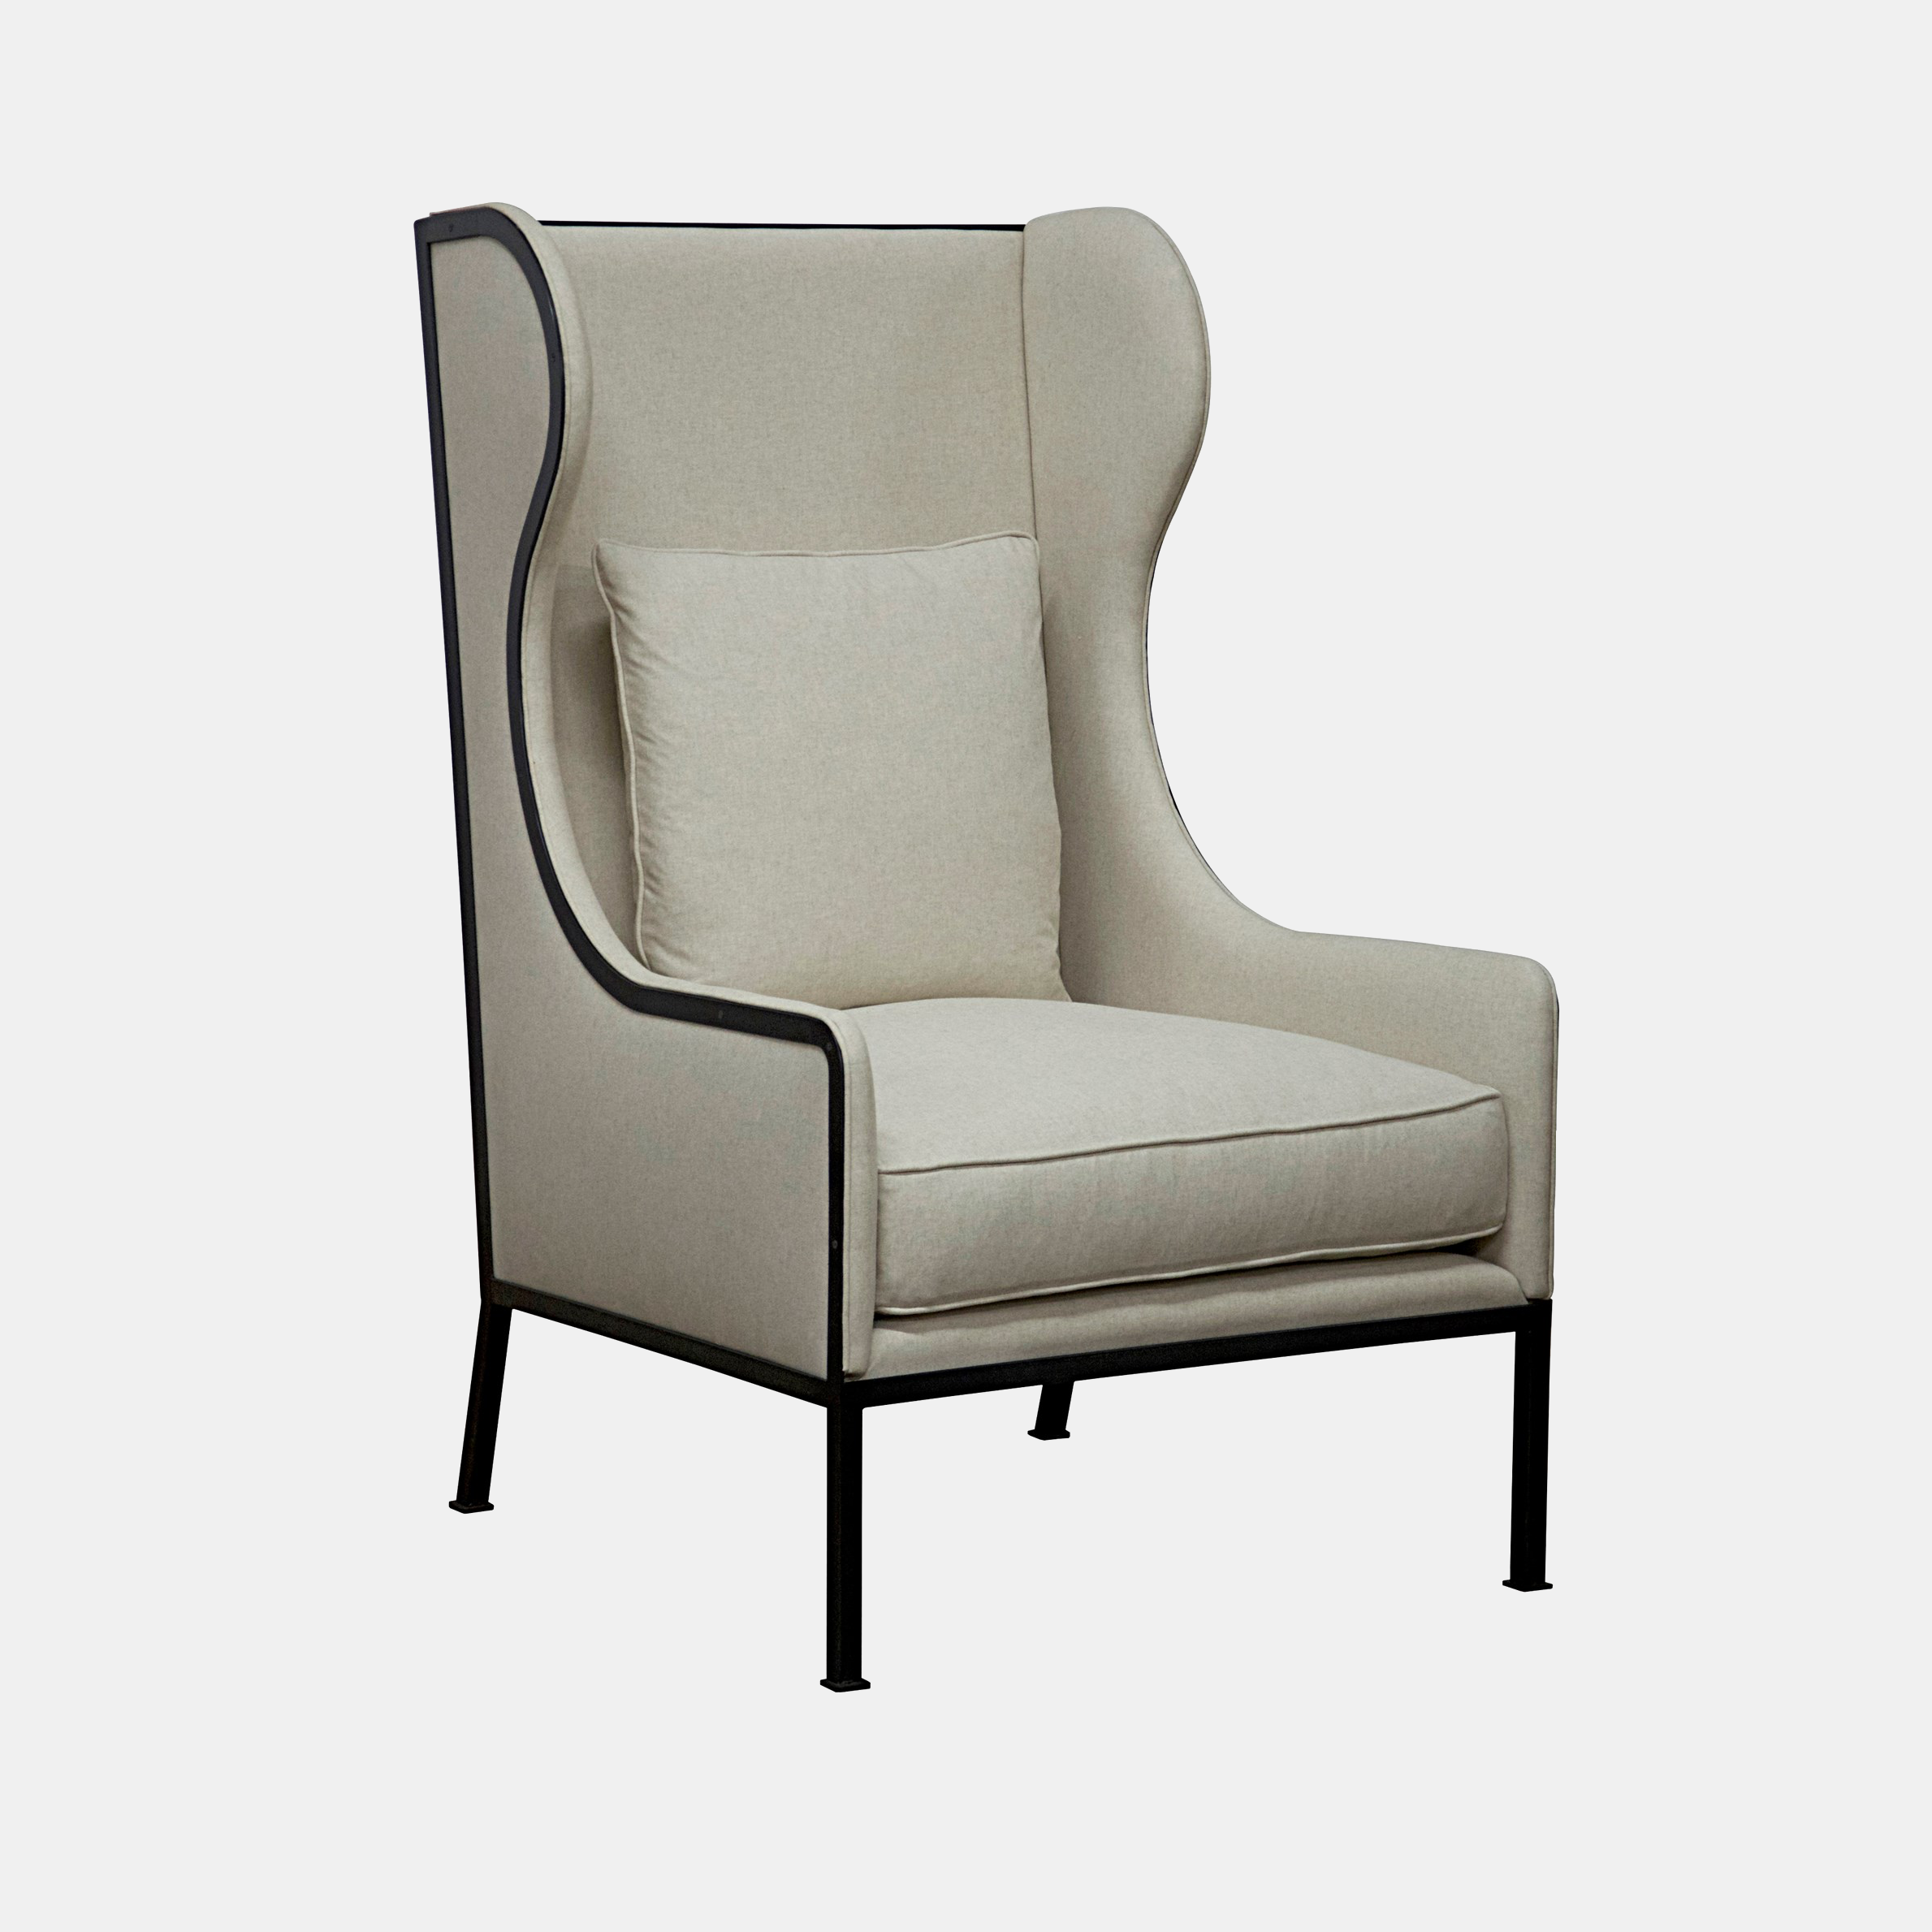 "Tall Allende Chair  32""w x 39""d x 52""h  Also available as standard chair. SKU0098CFC"